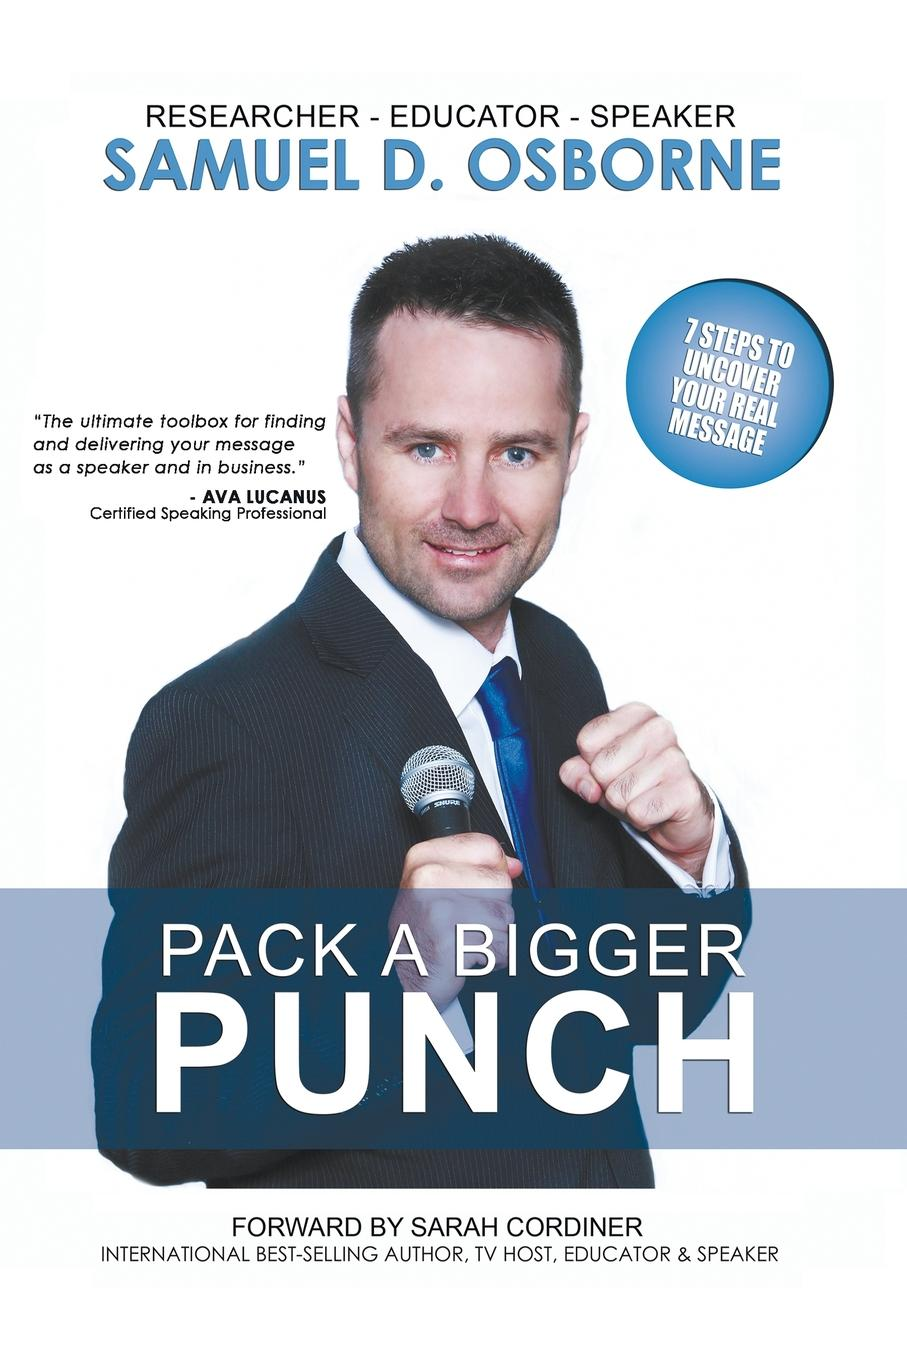 Samuel D. Osborne Pack A Bigger Punch, 7 Steps to Uncover Your Real Message samuel clarke remarks upon a book